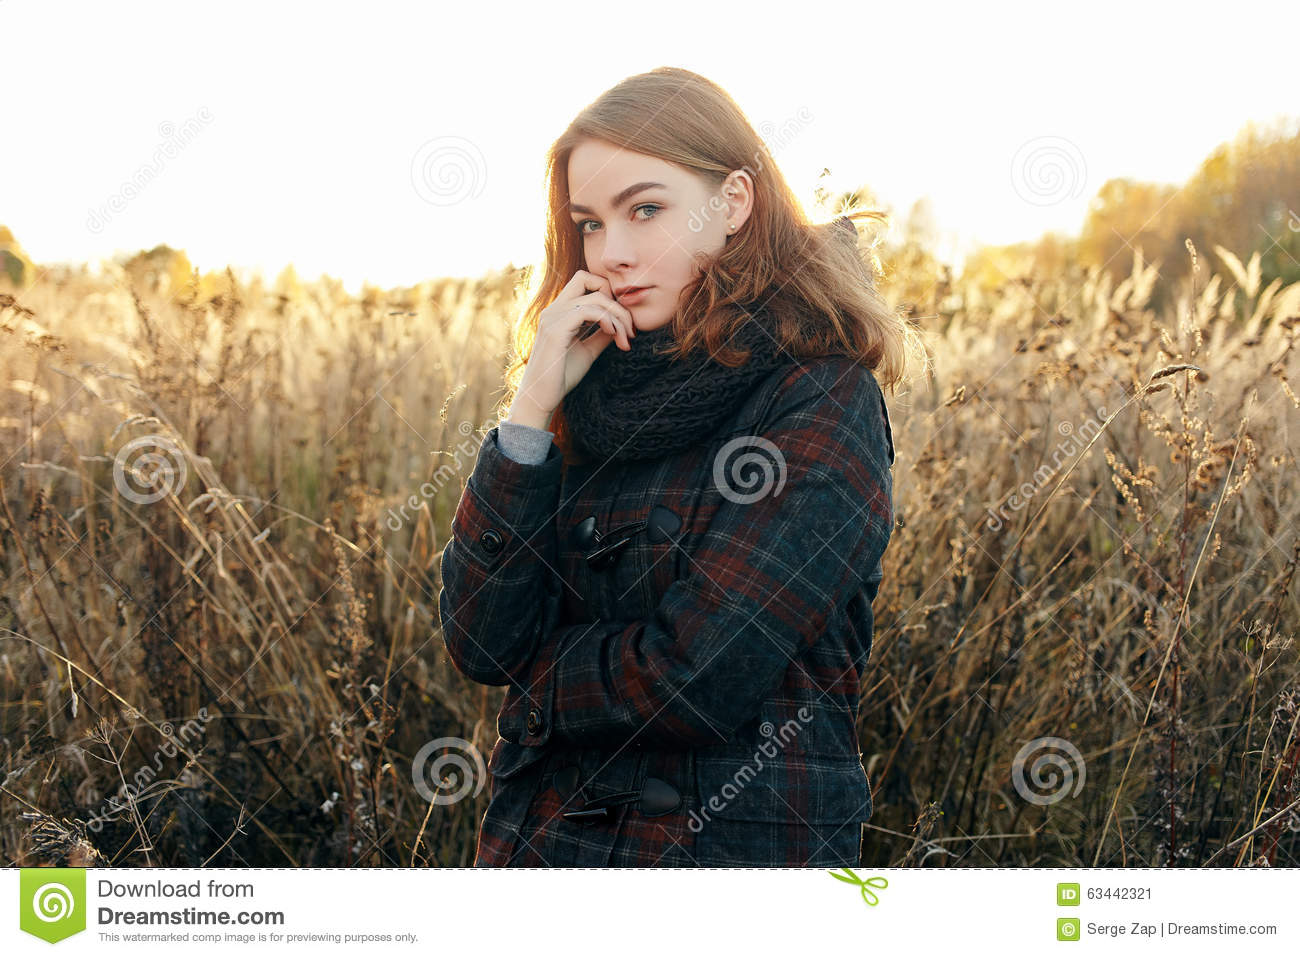 Noon portrait young beautiful redhead woman in scarf and plaid jacket on faded meadow cold season outdoors